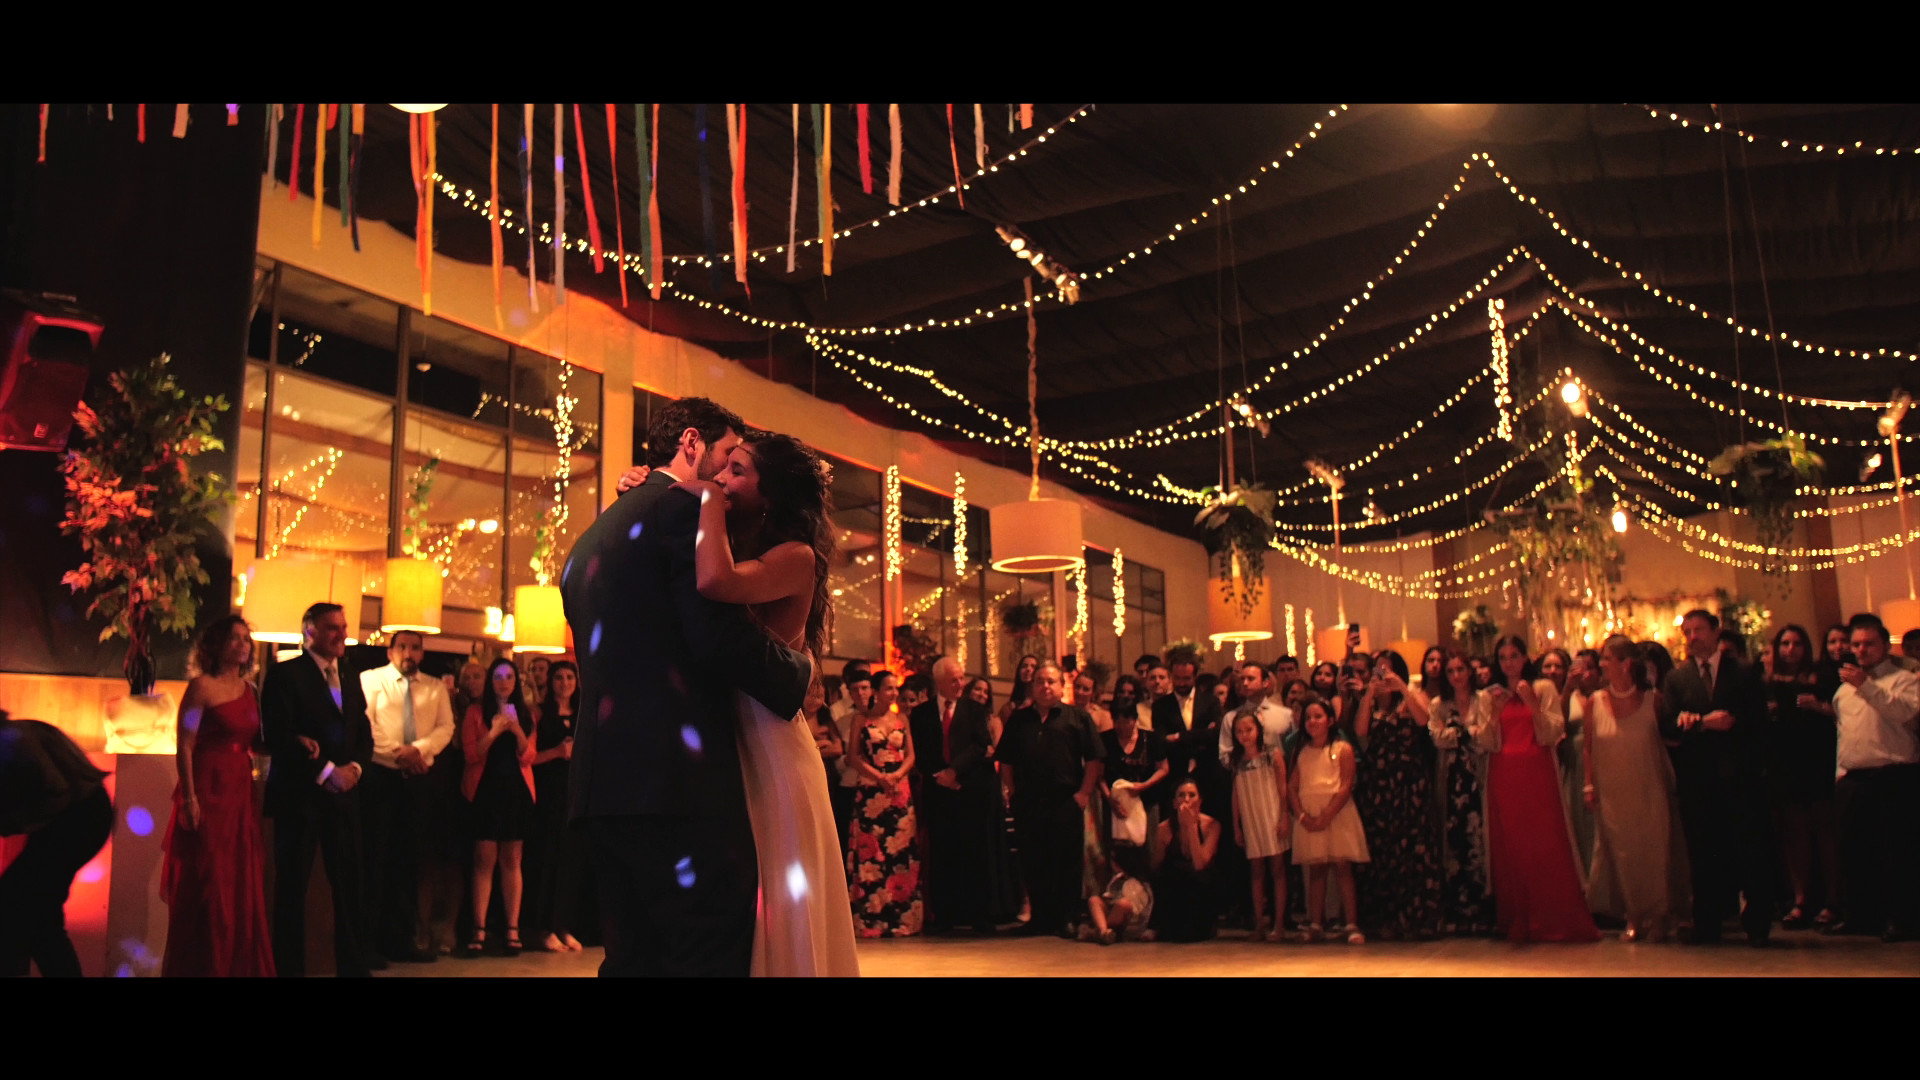 Caro & Benja - Matrimonio en Los Ingleses de Chicureo - Video por Ampersand Wedding Films